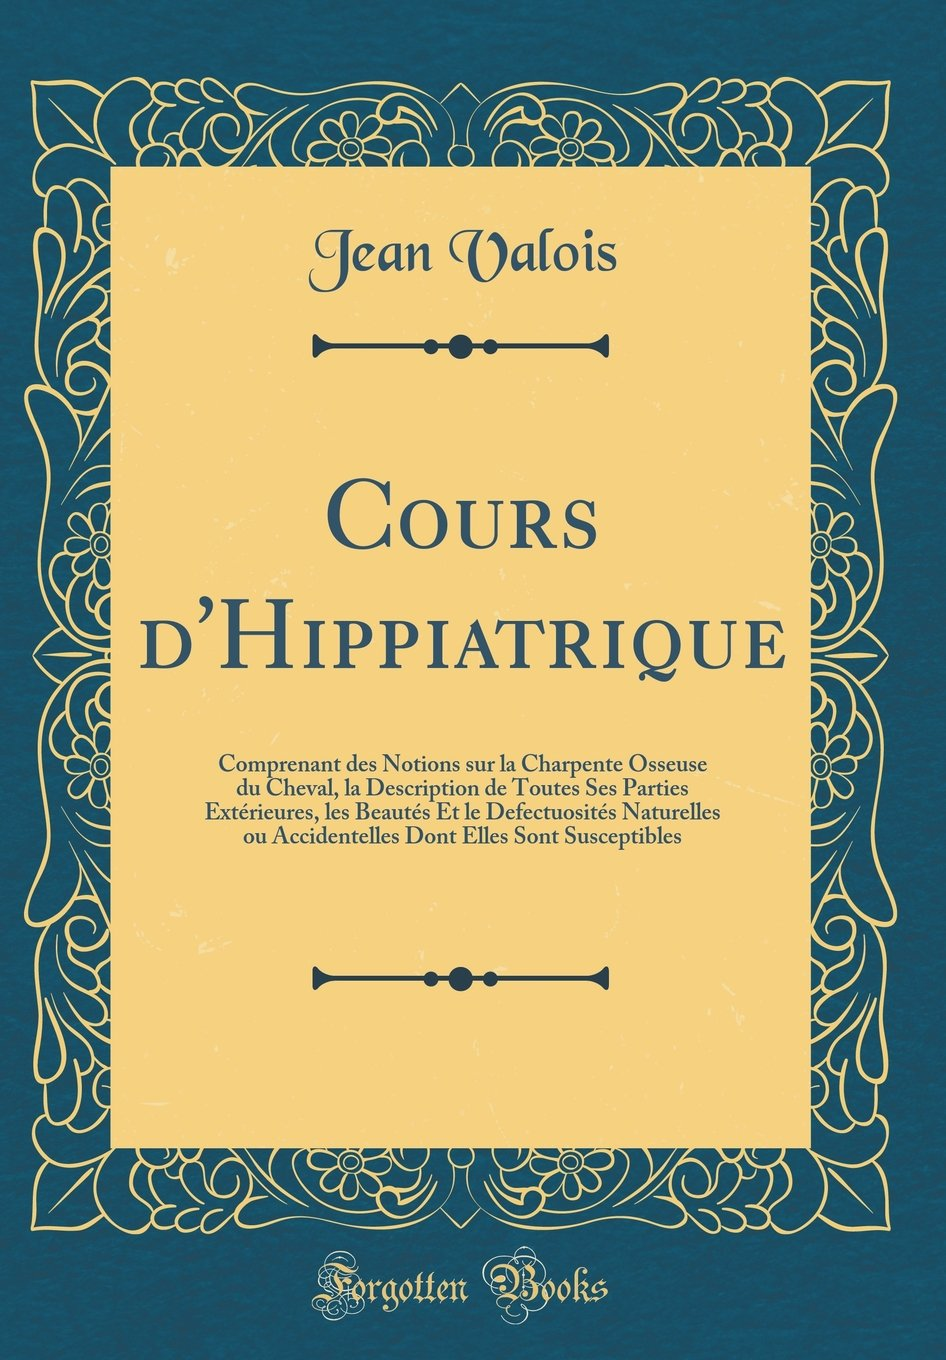 Download Cours d'Hippiatrique: Comprenant des Notions sur la Charpente Osseuse du Cheval, la Description de Toutes Ses Parties Extérieures, les Beautés Et le ... (Classic Reprint) (French Edition) ebook